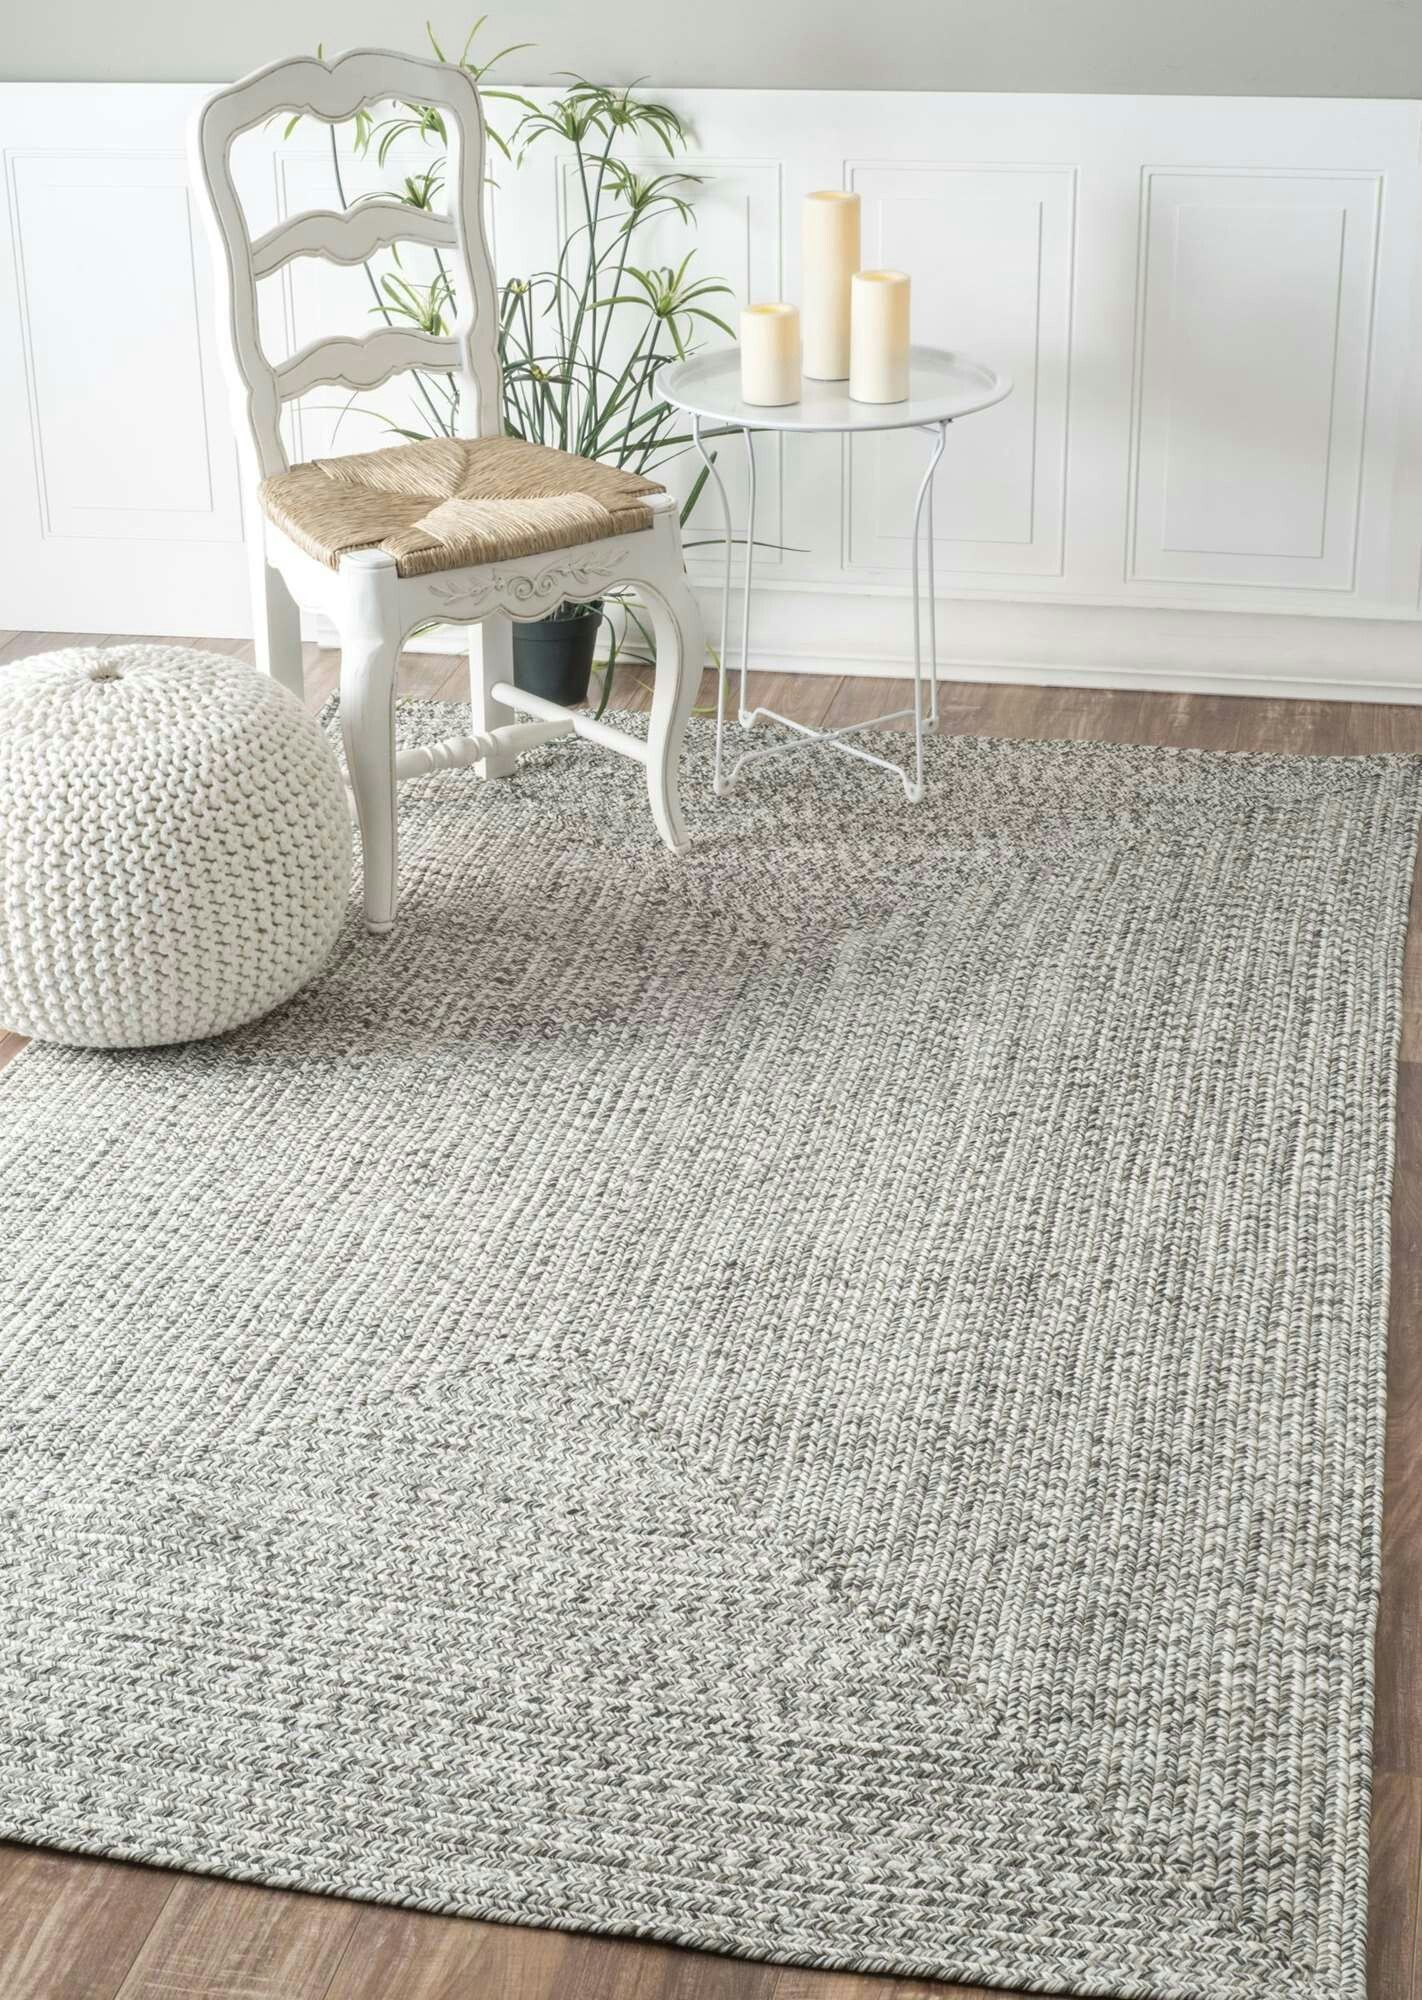 Jubilee Braided FV01 Rug USA Rugs Grey Living RoomsLiving Room